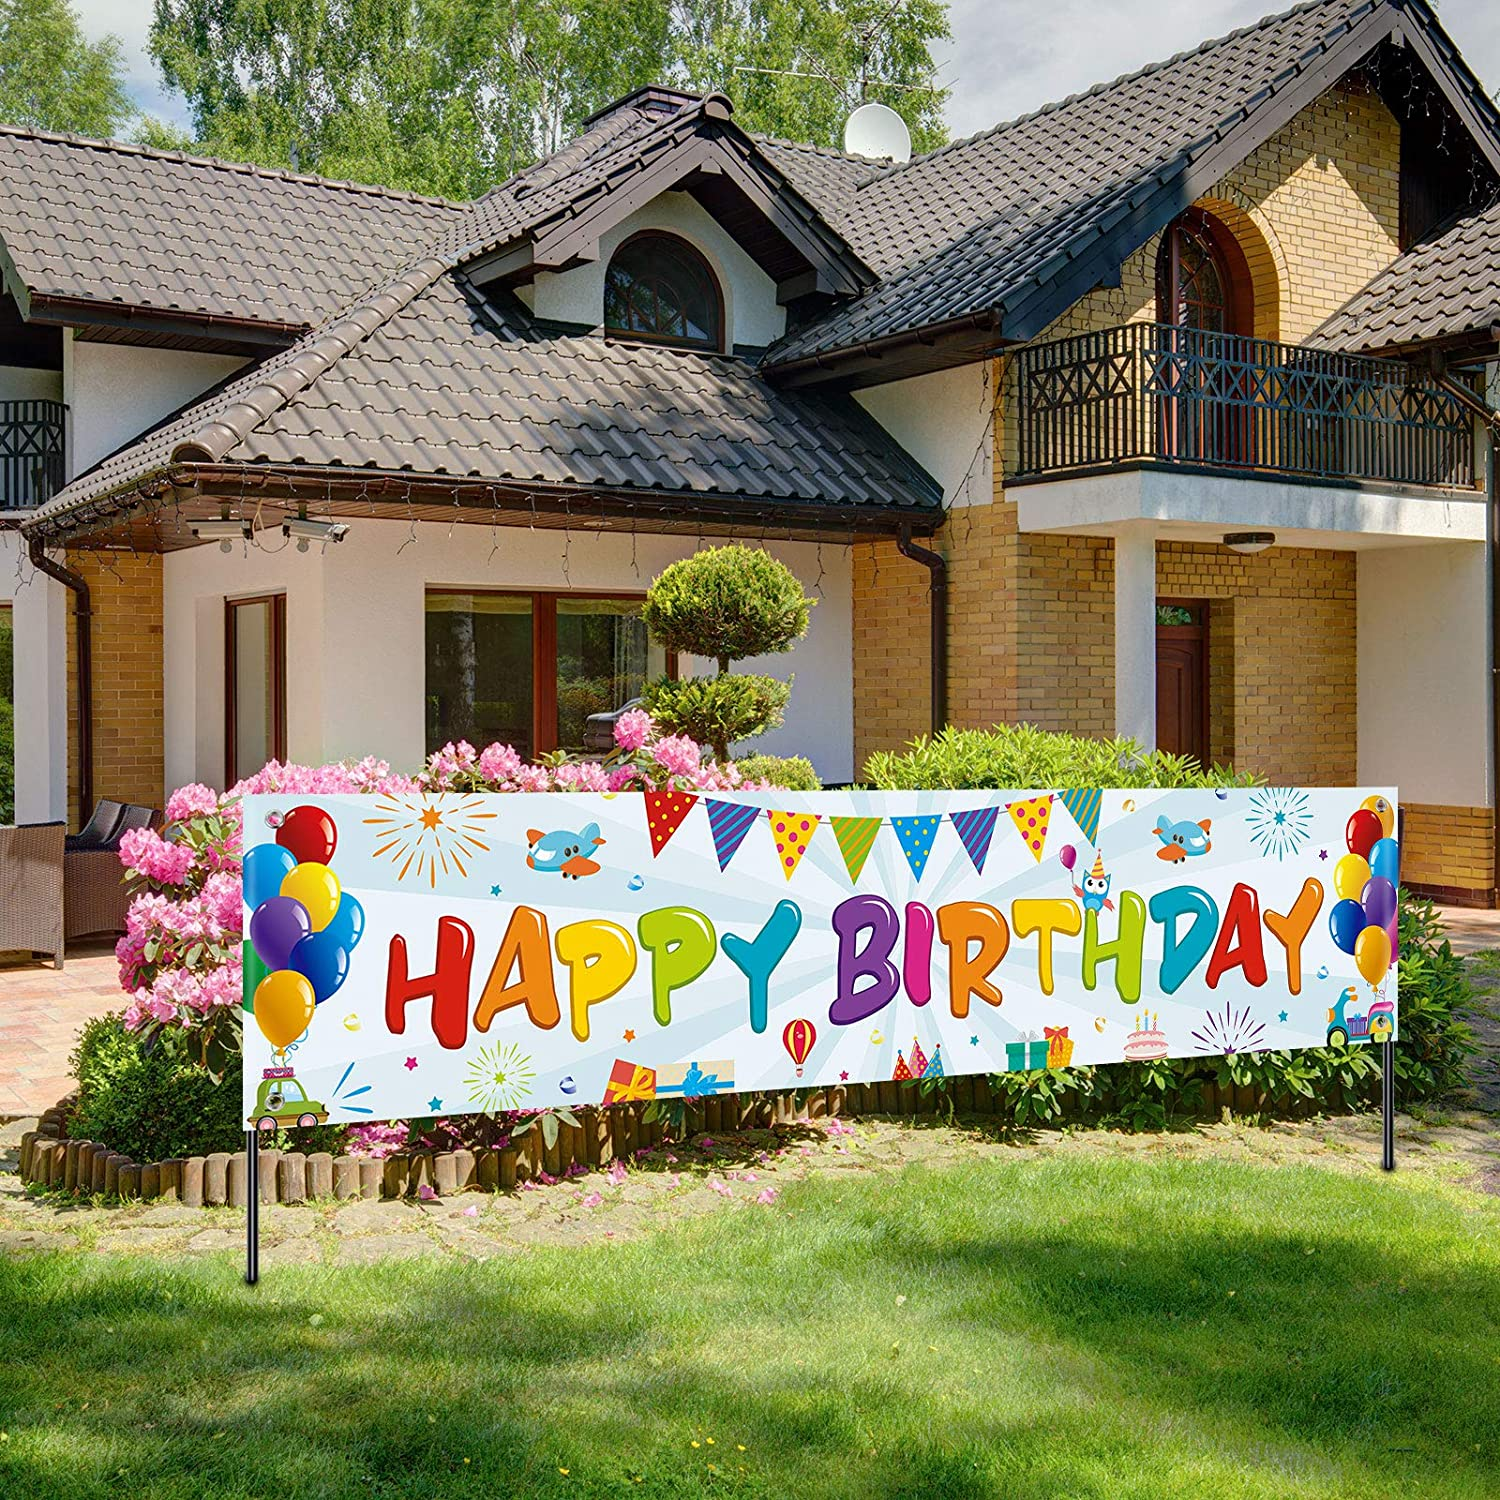 Colorful Happy Birthday Banner, Large Fabric Happy Birthday Sign Backdrop Background, Happy Birthday Yard Sign for Kids Birthday Party Decorations Girls Boys Bday Decor, 71 x 15.7 inches (Light)